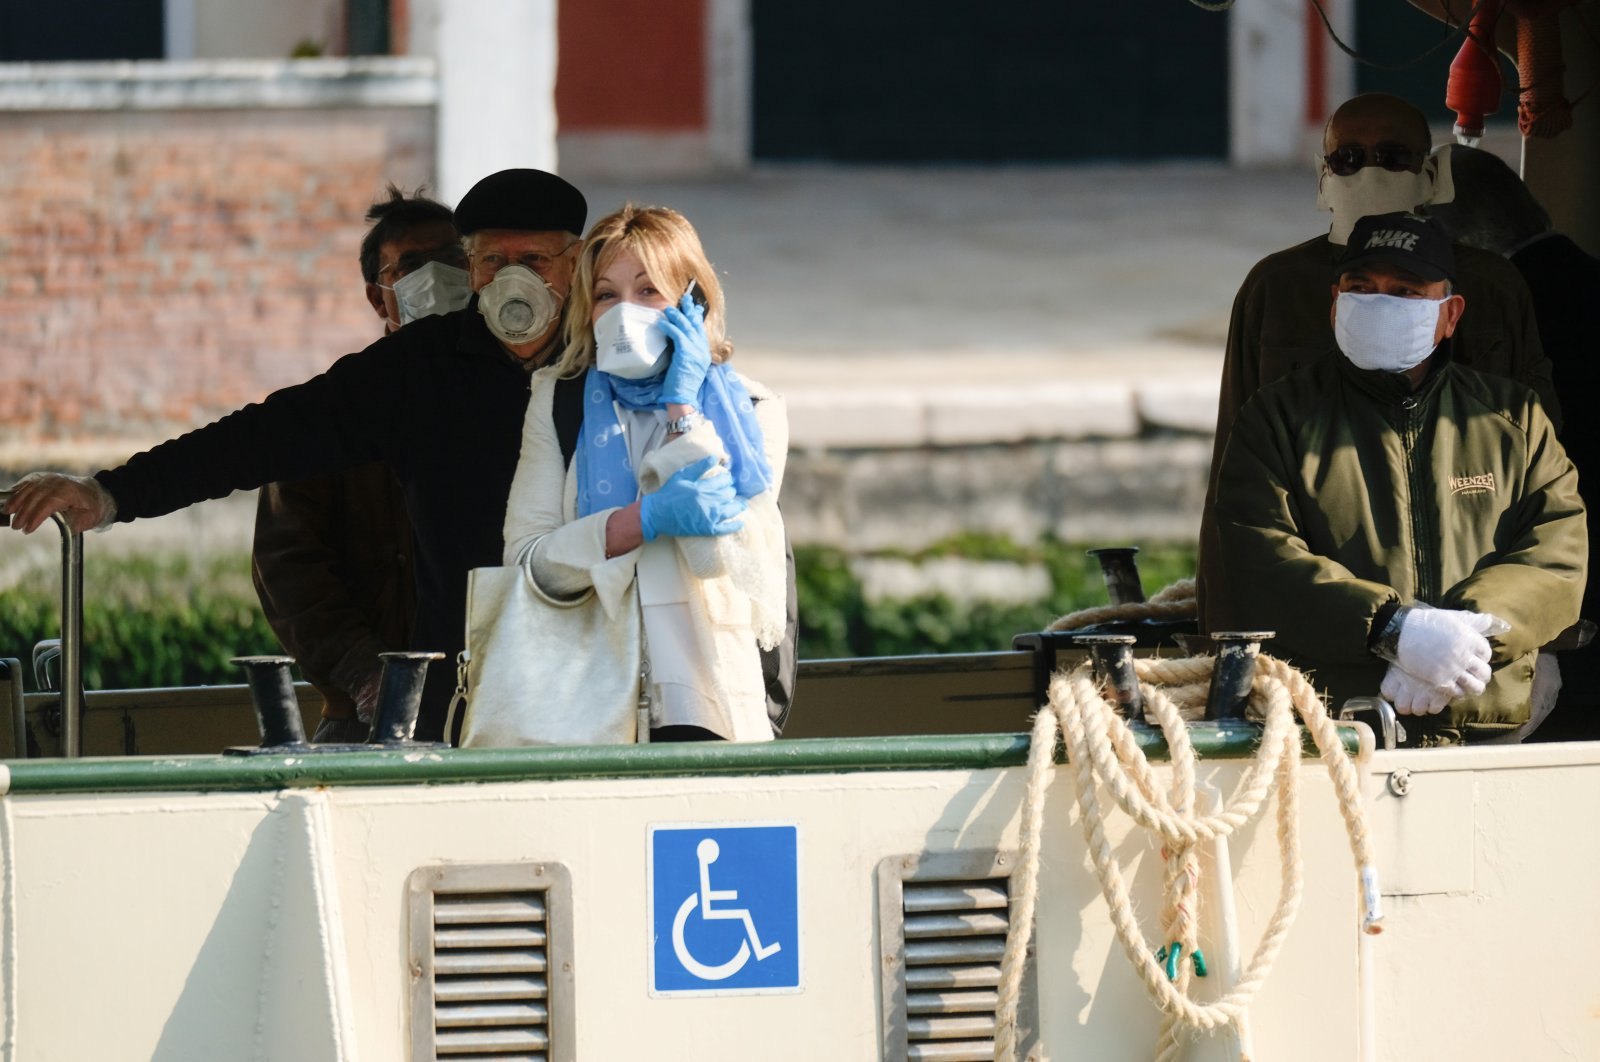 People wearing protective masks and gloves are seen on a water bus as the Italian government allows the reopening of some shops while a nationwide lockdown continues, Venice, April 14, 2020. (REUTERS Photo)